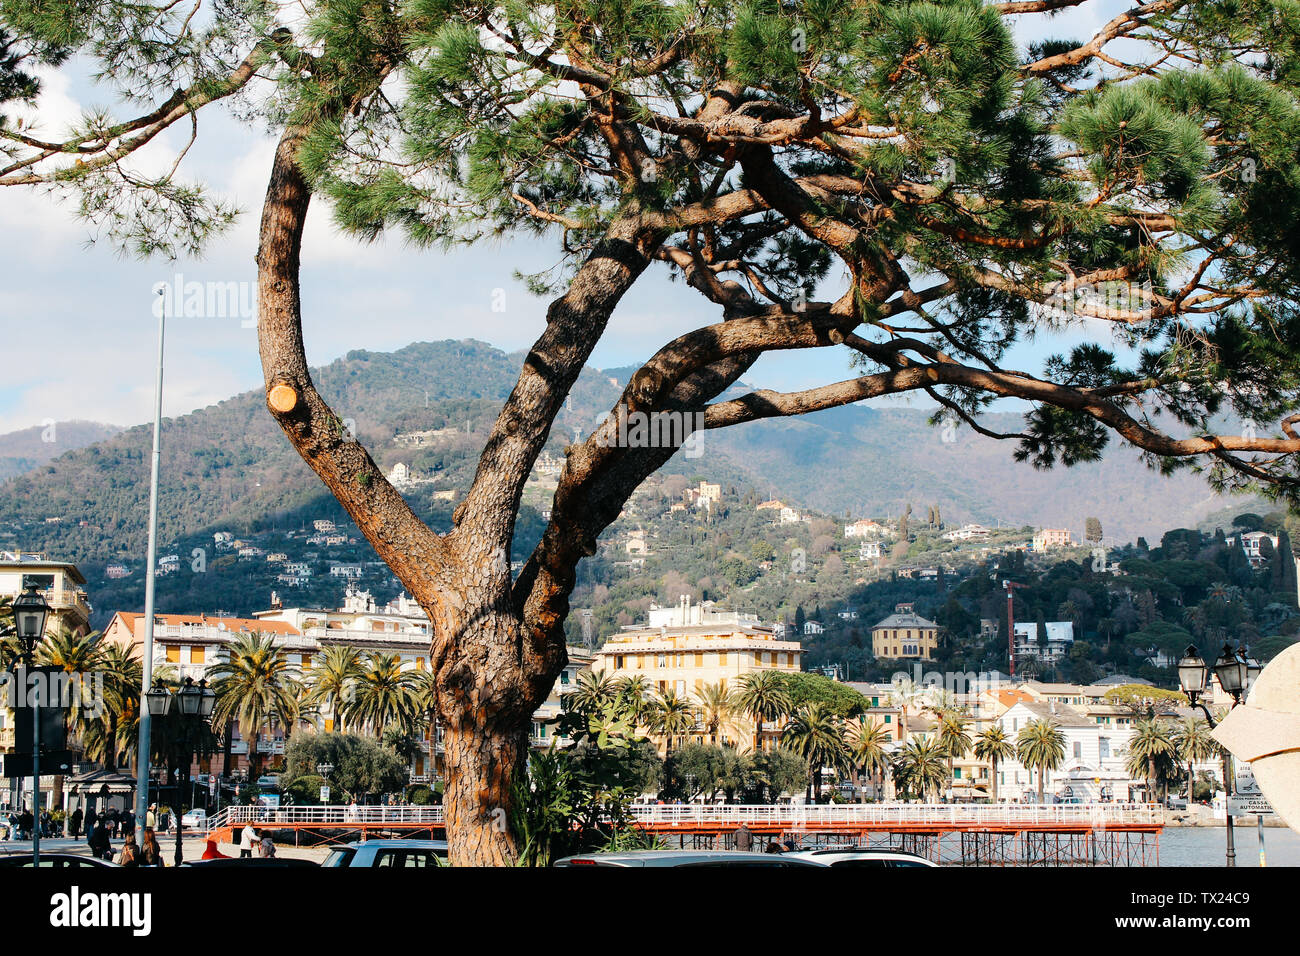 Rapallo, Italy - 03 27 2013: View of the streets of Rapallo - Stock Image